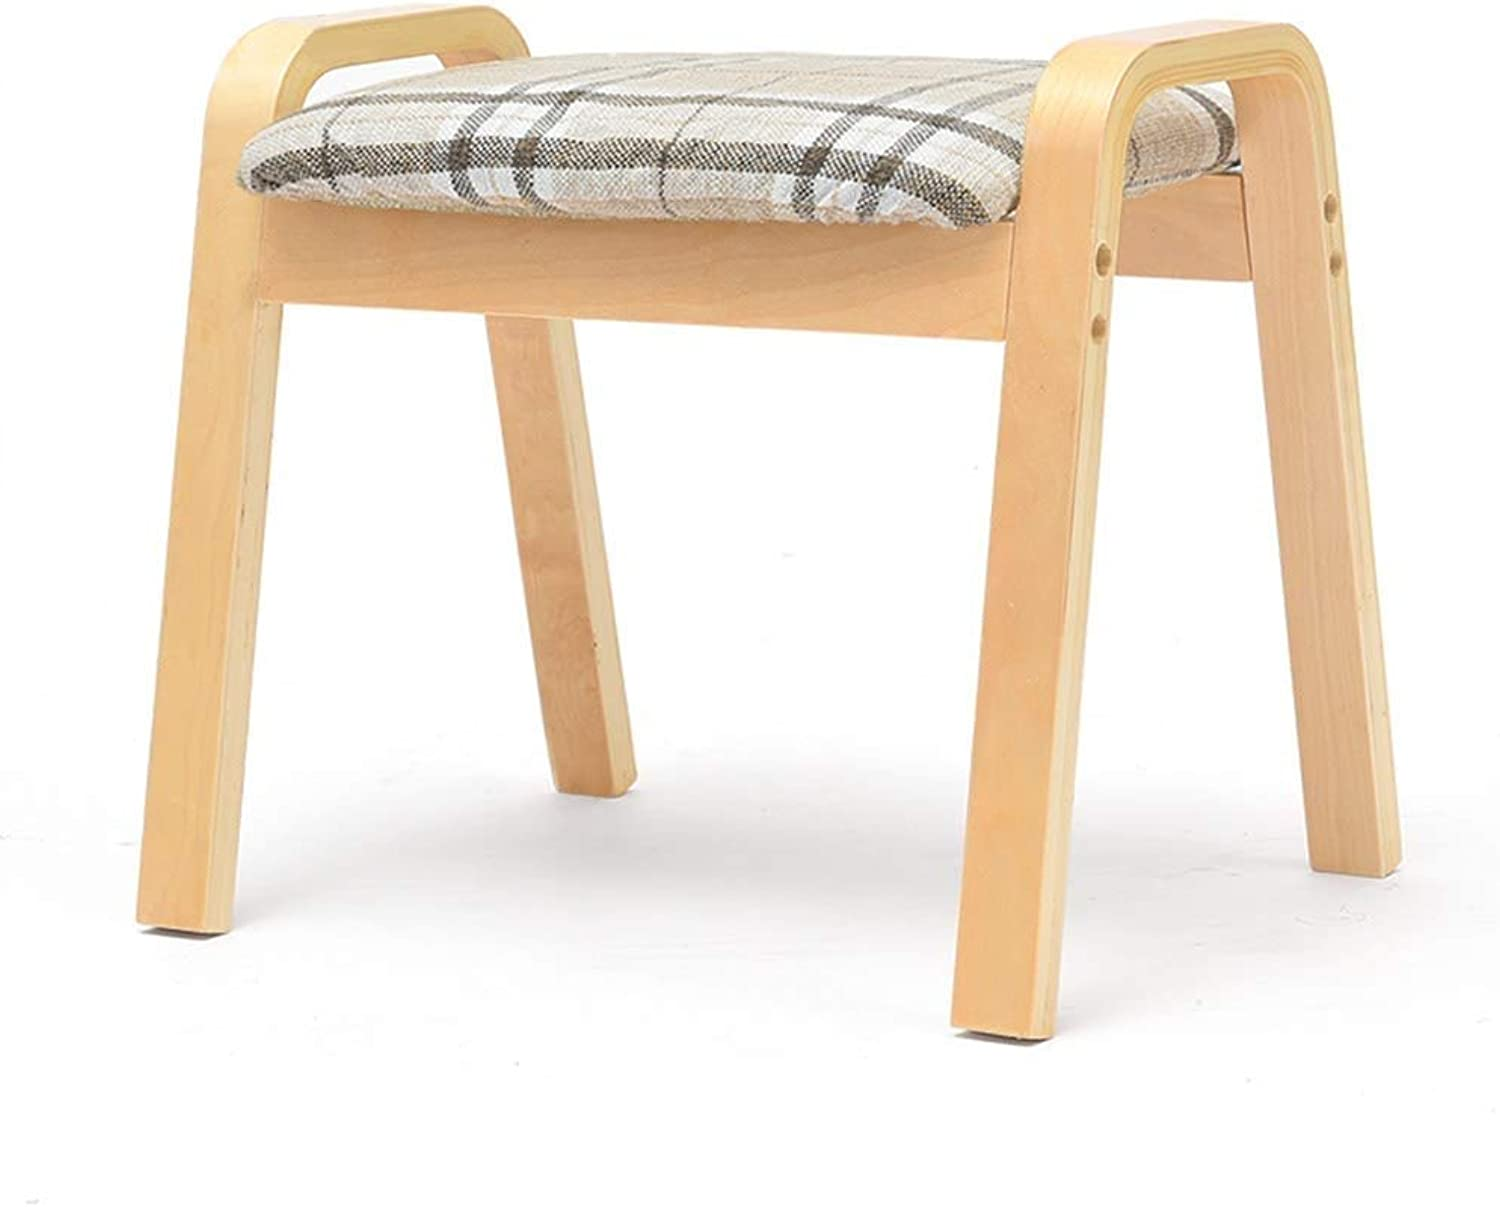 European Chair Change shoes Bench, Simple Modern dustproof Storage Stool Bed end Stool Multifunctional Home Creativity (color   B)